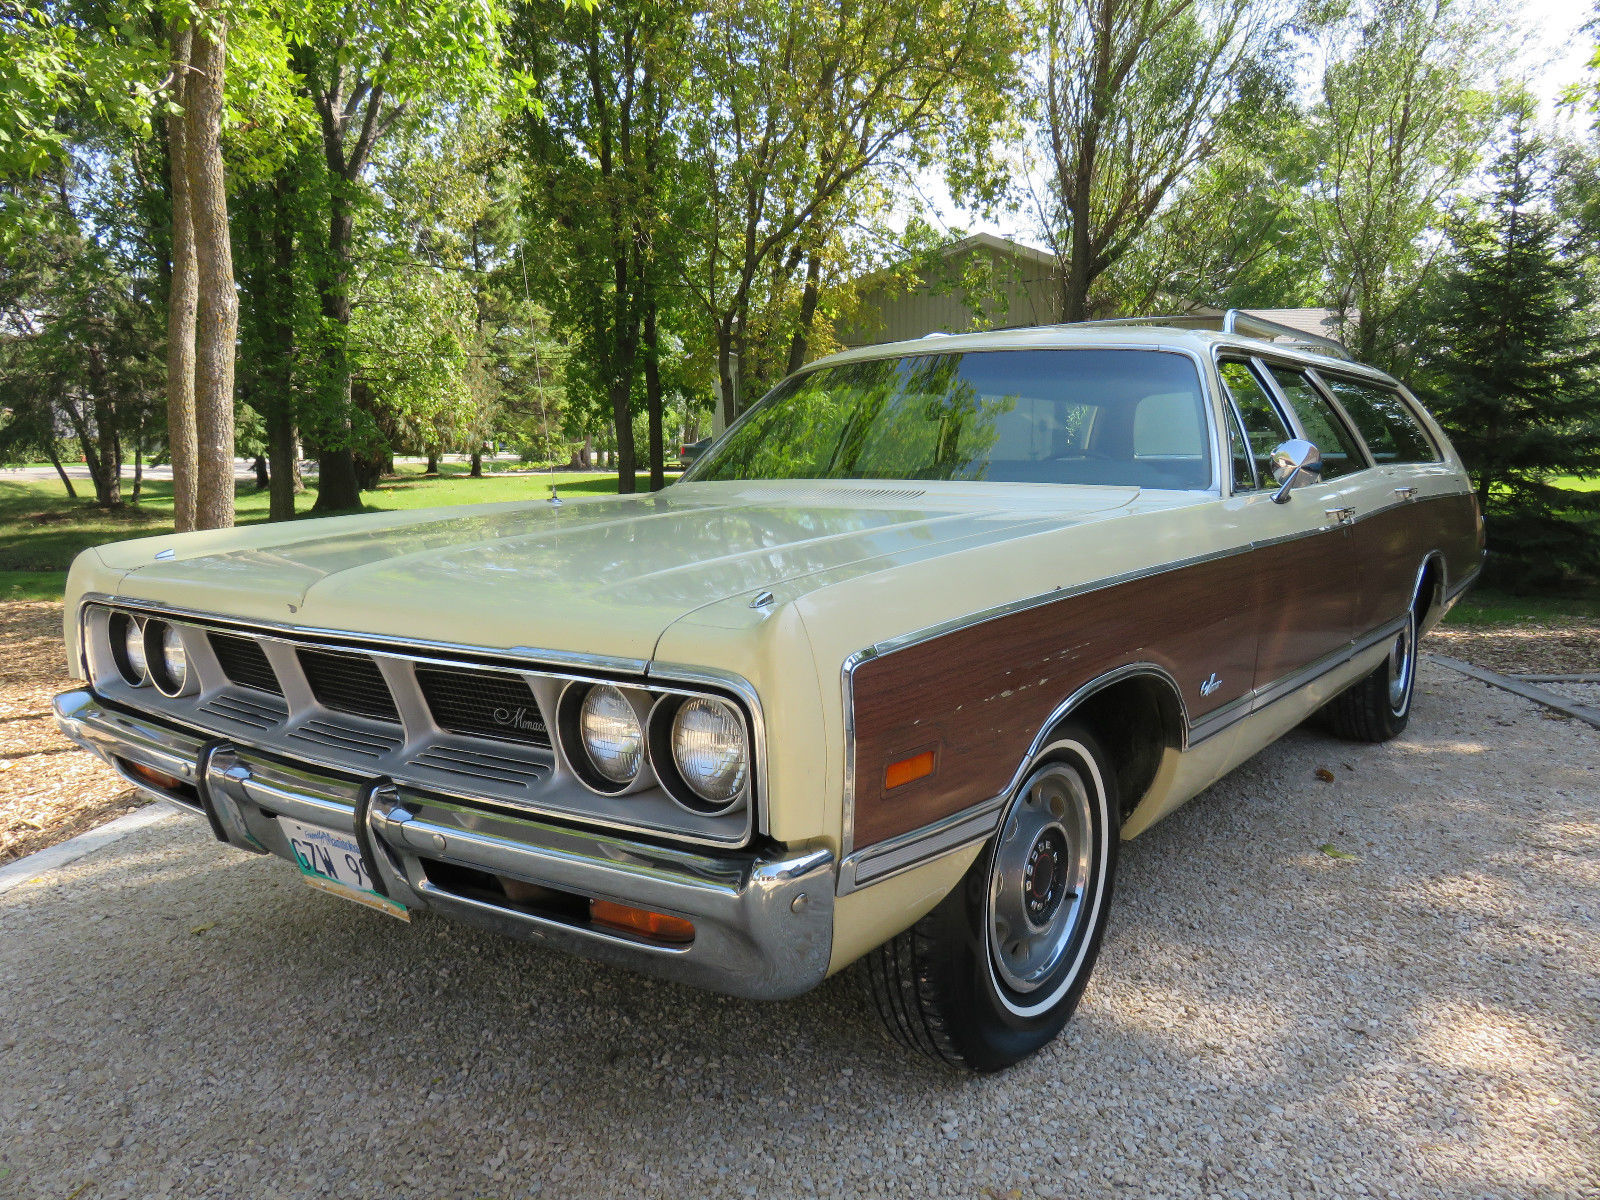 1969 Dodge Monaco station wagon